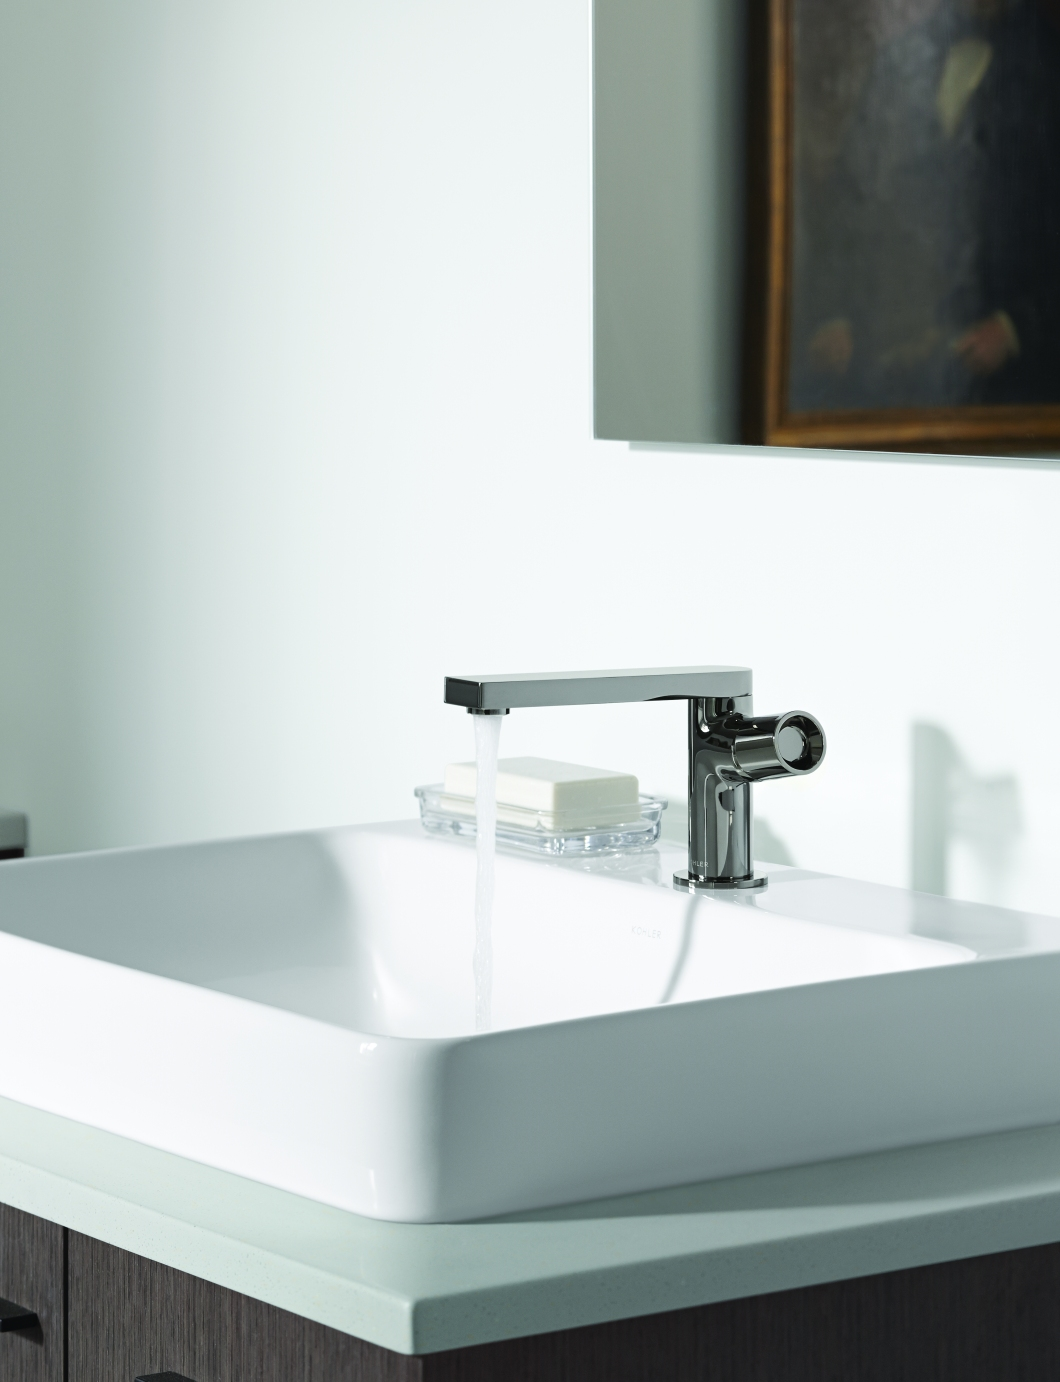 Kohler Composed Basin Mixer